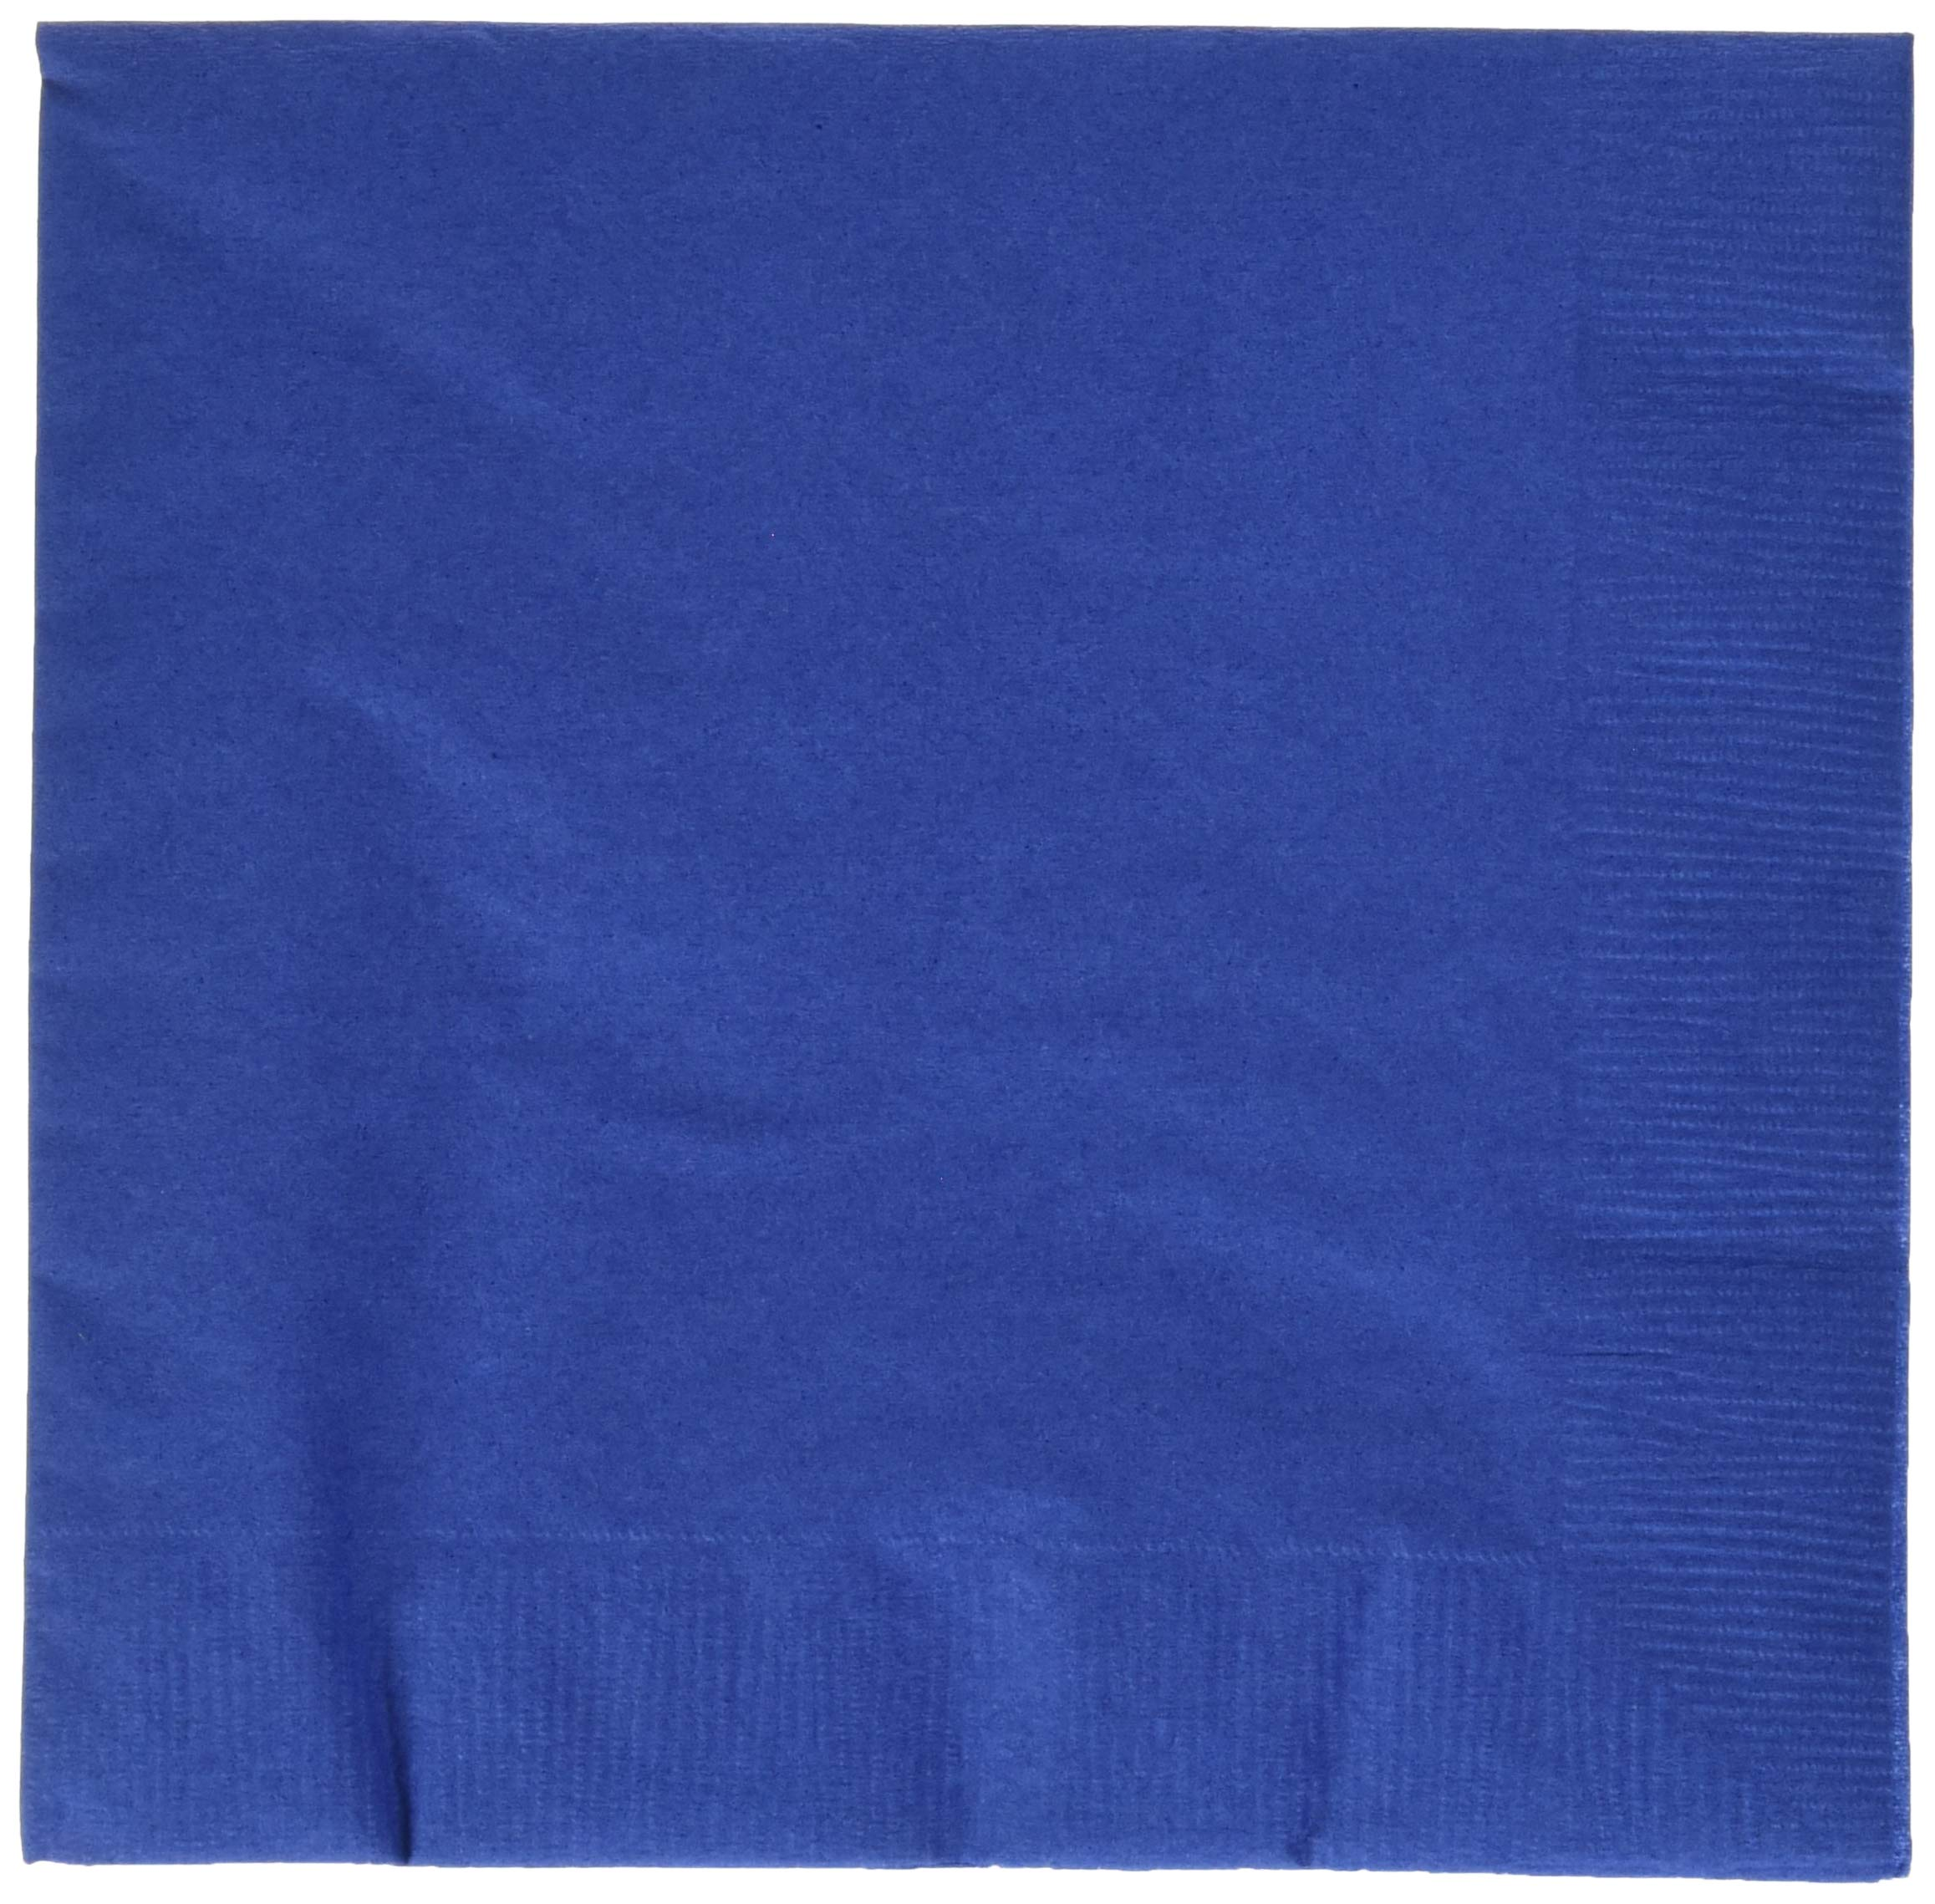 Amscan Bright Royal Blue Luncheon Napkins | Party Supply | 480 ct.